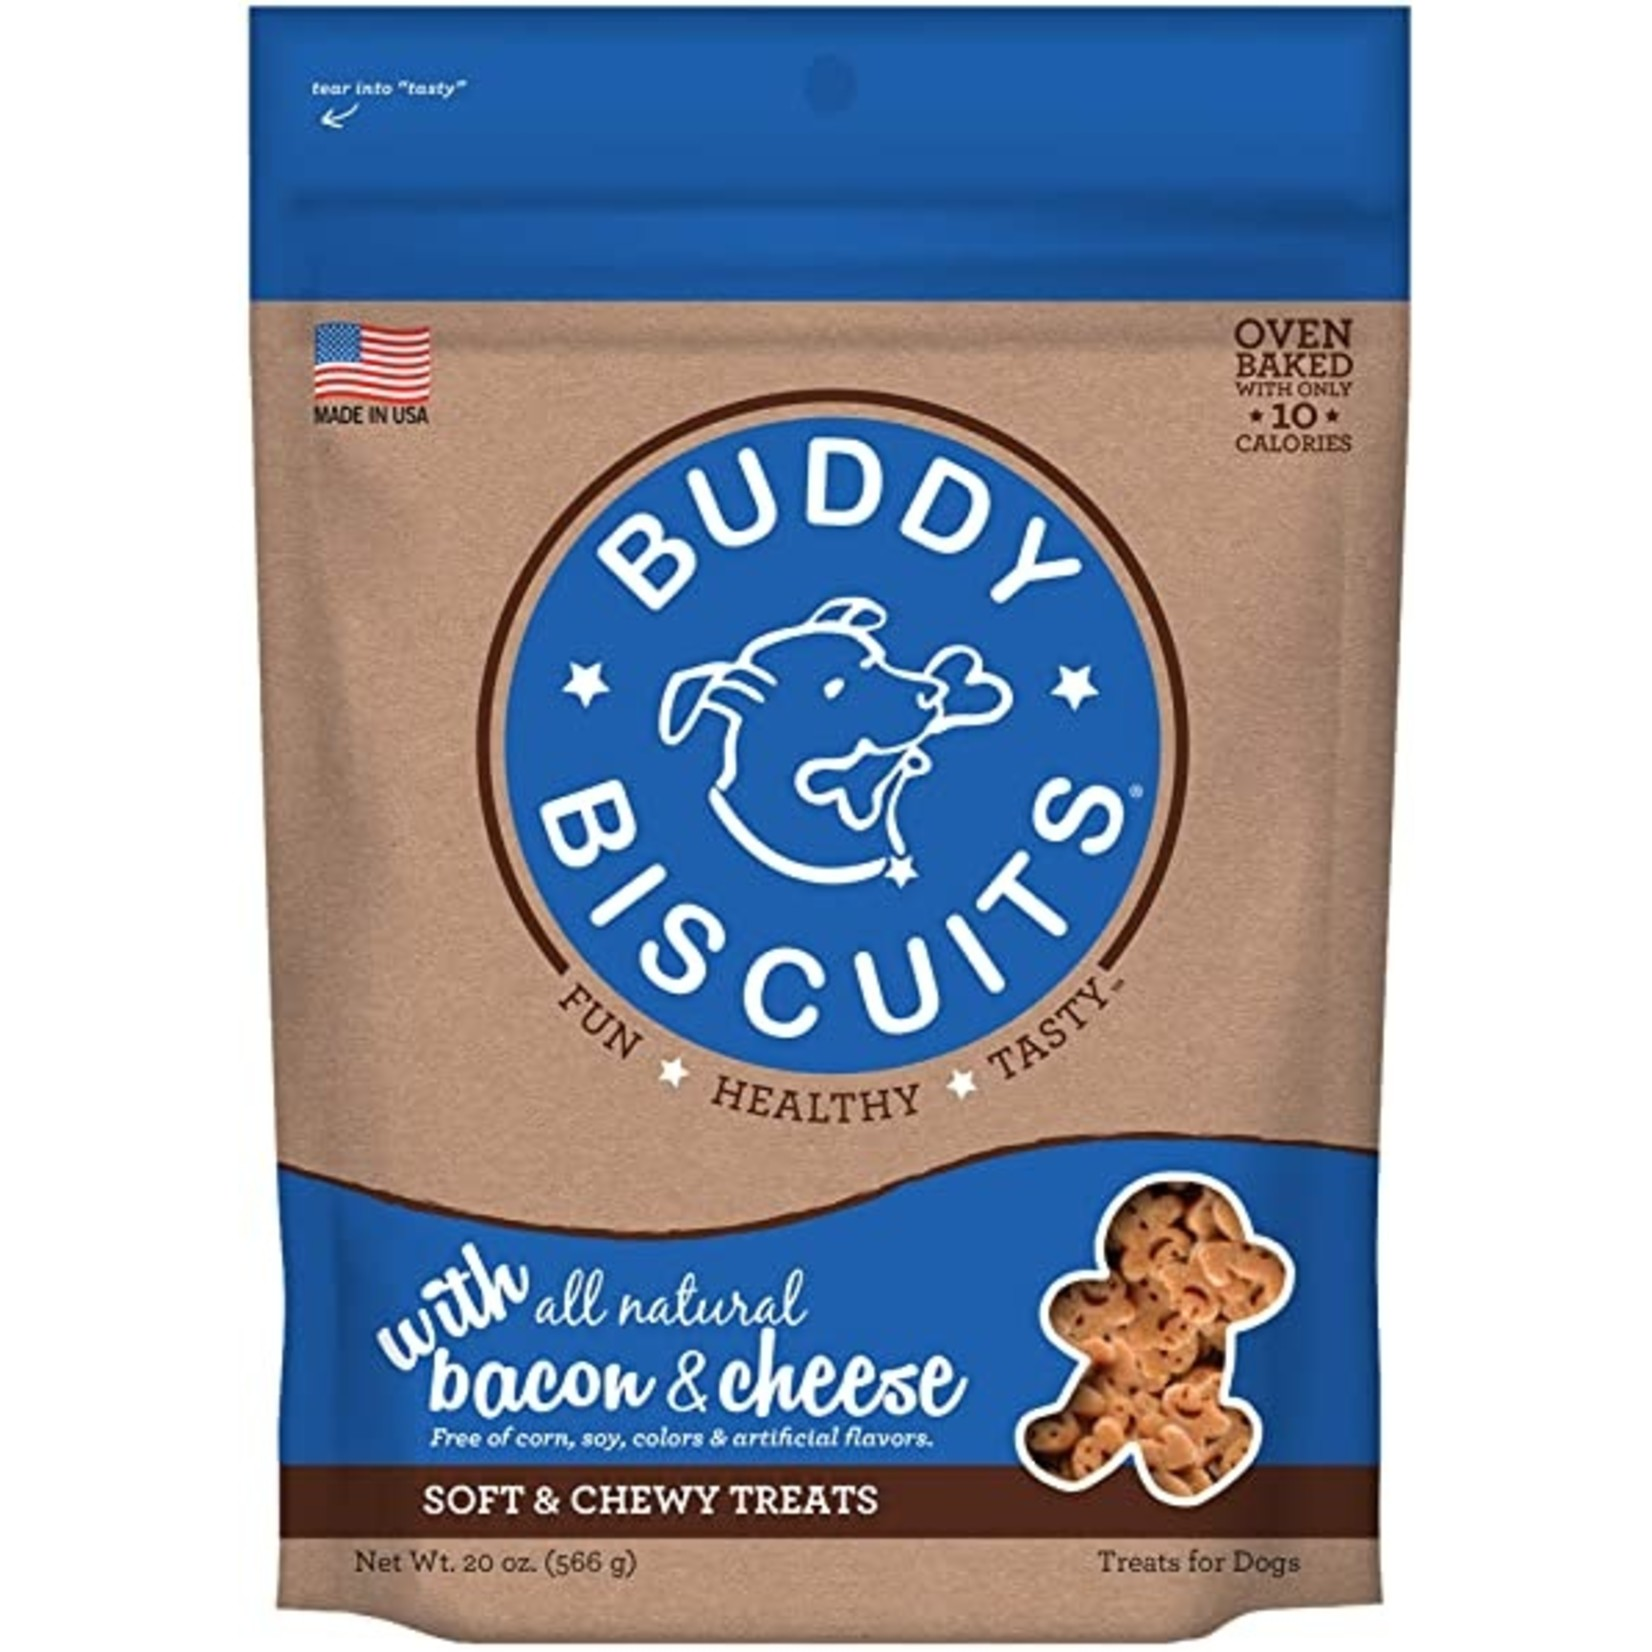 Cloud Star Buddy Biscuits Soft & Chewy Bacon & Cheese Dog Treats 6oz